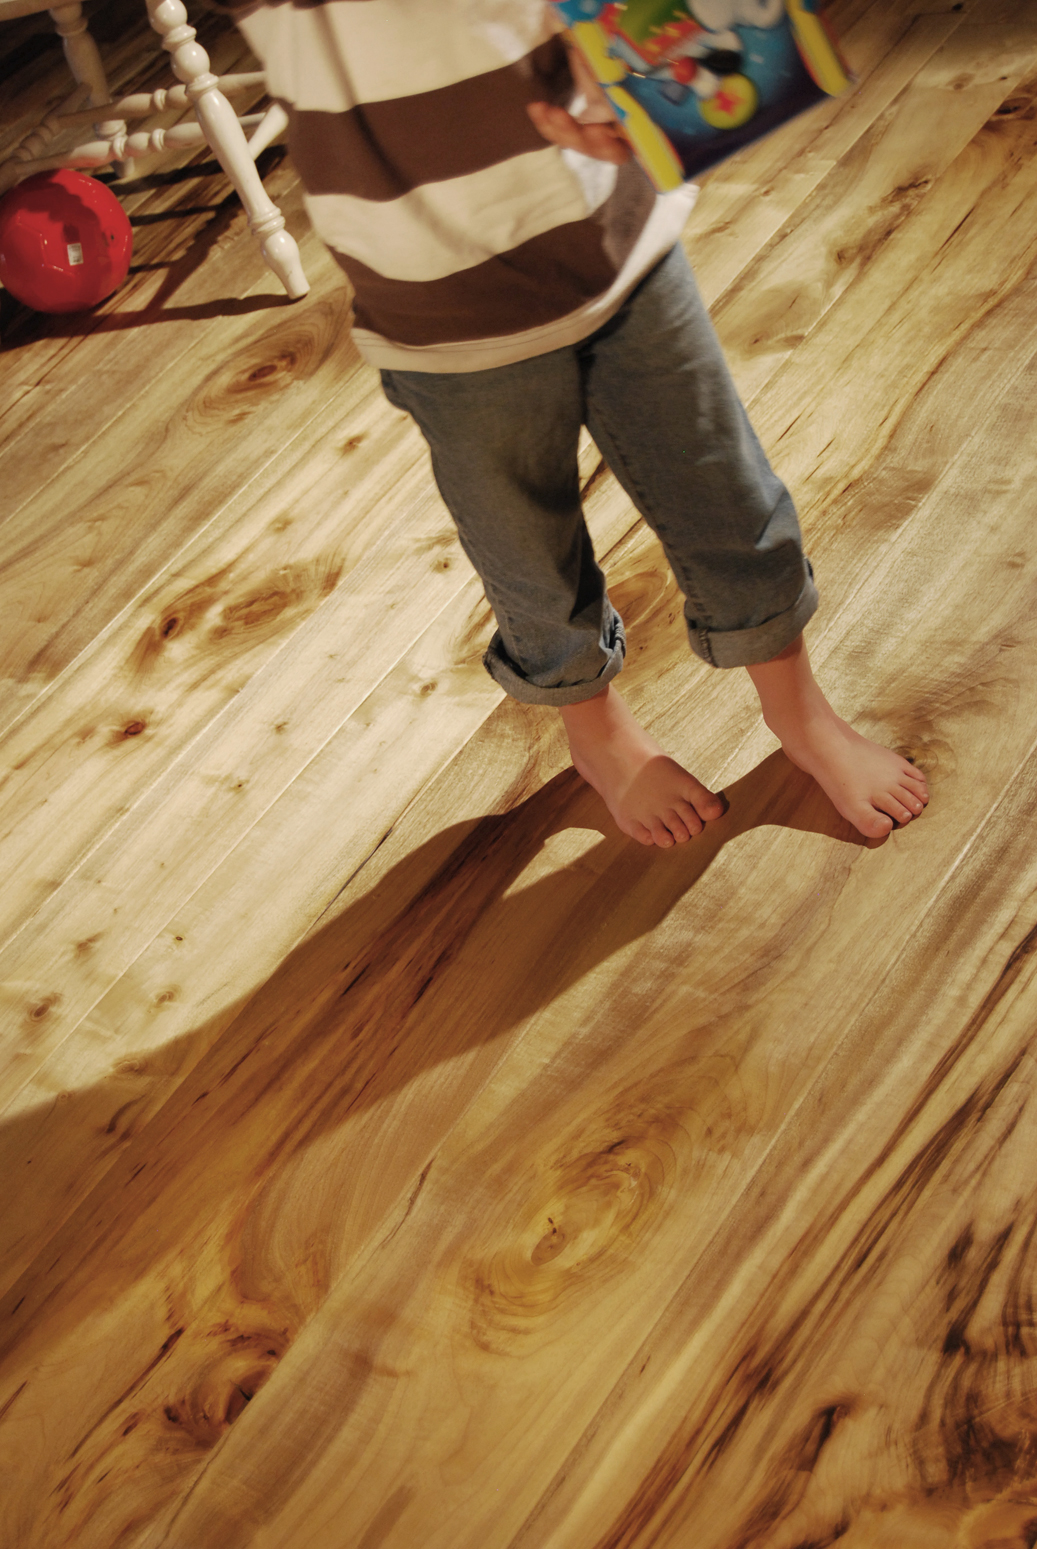 web96-child-s-feet-on-jt-studio-floor.jpg